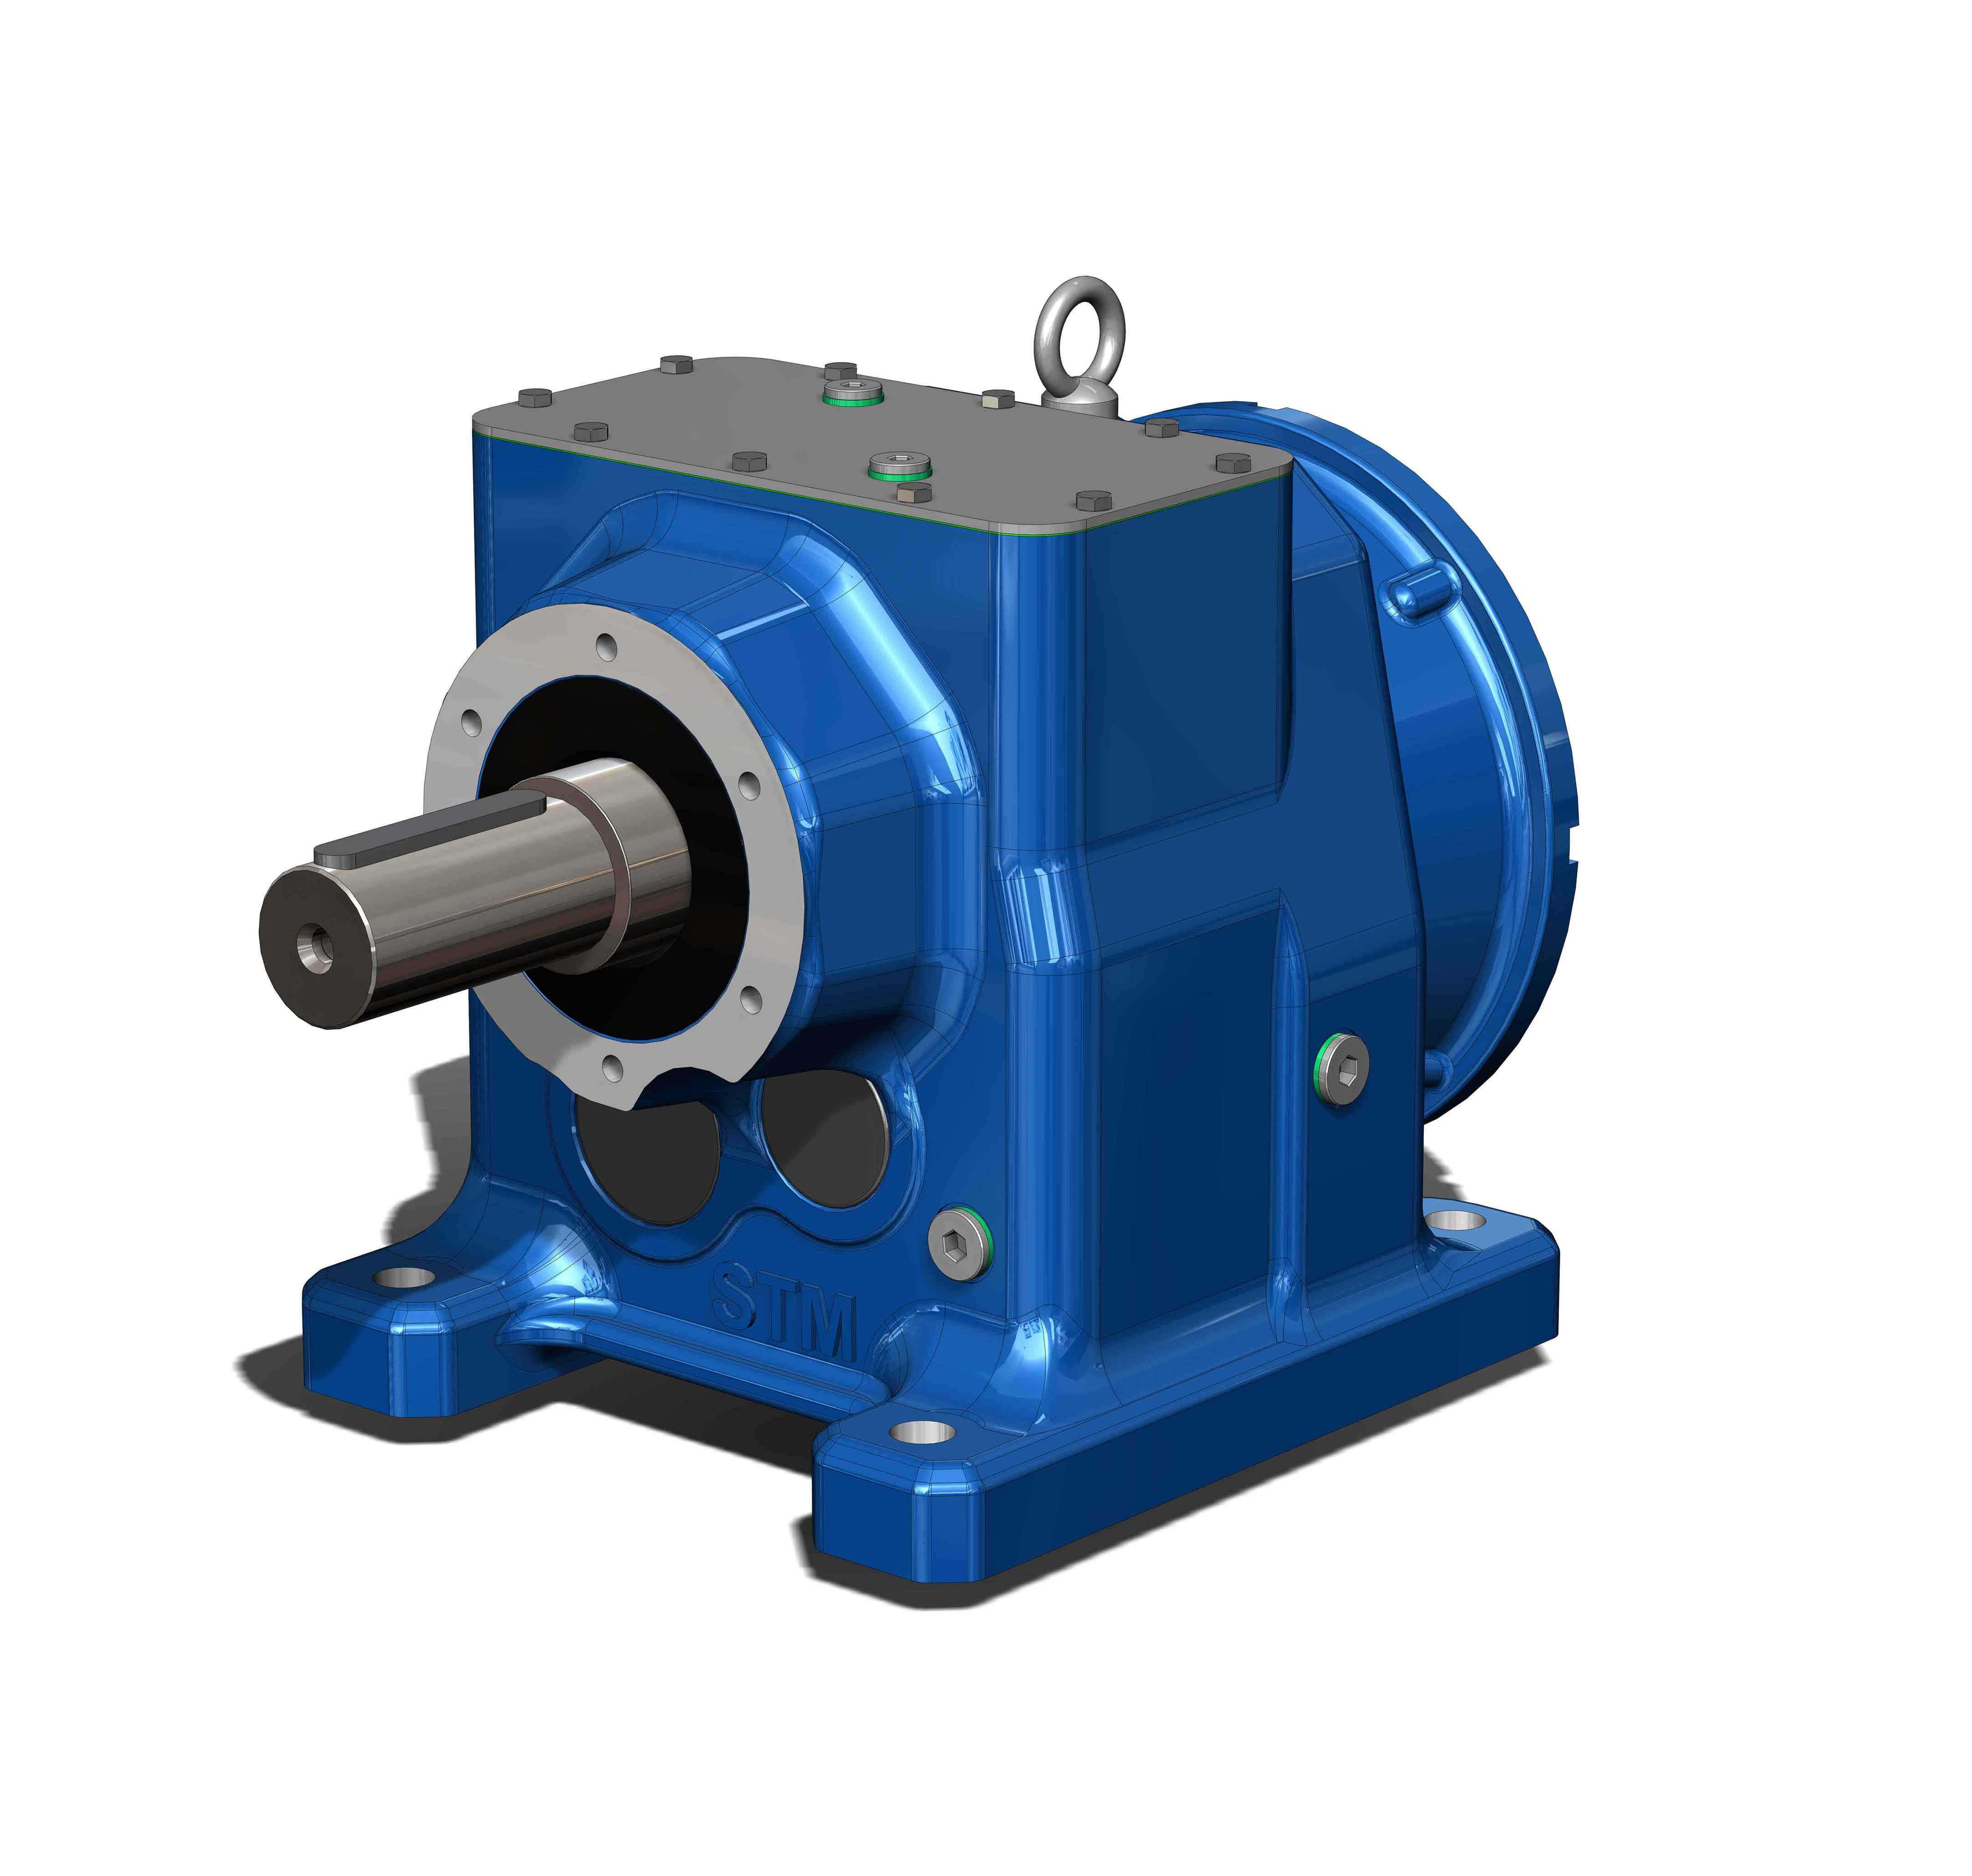 STM NEW INLINE GEARBOXES A SERIES